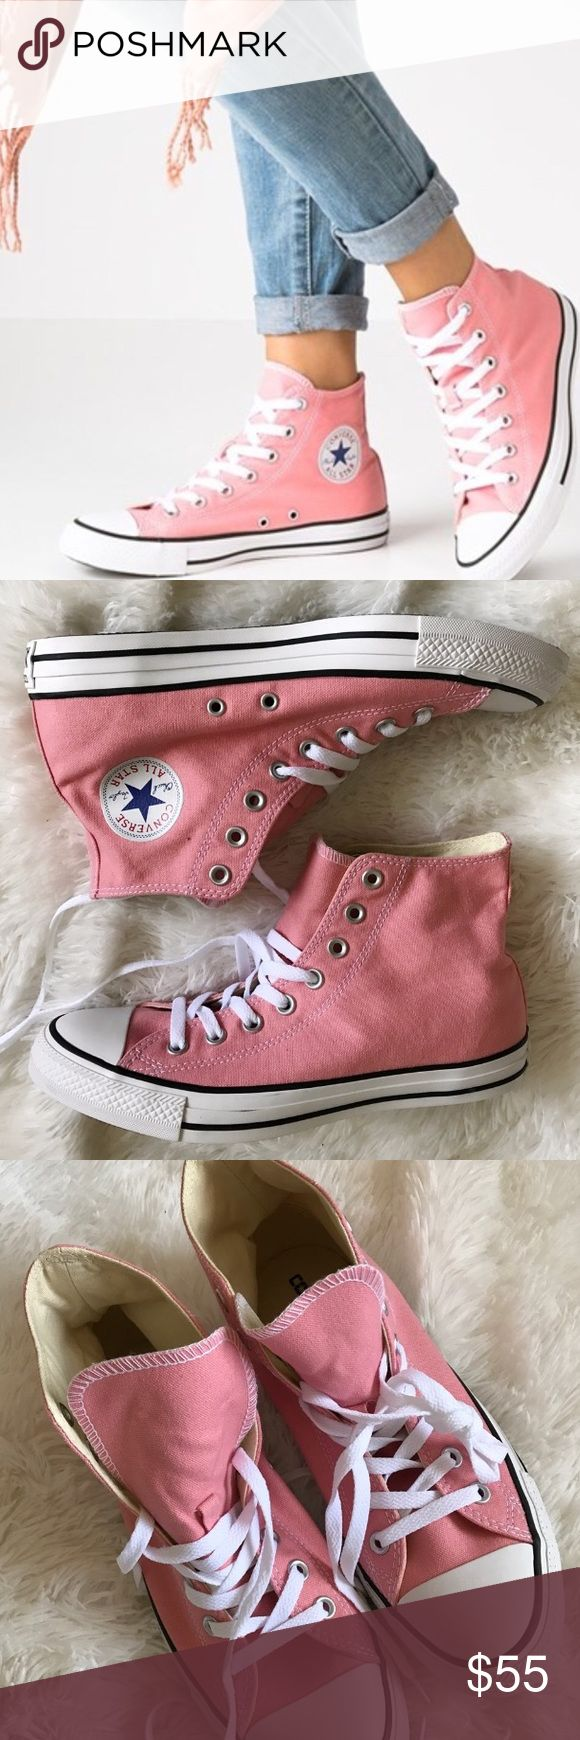 Converse womens Chuck Taylor hi top classics pink Brand new without box. 100% authentic.  Ships same day or very next.  Price is firm.  No trades.  Bundle and only pay shipping once.  If you have any questions before ordering please feel free to leave me a comment and I will get back to you ASAP.  Use the filter option to see what else I have available in your size.  Converse Shoes Sneakers